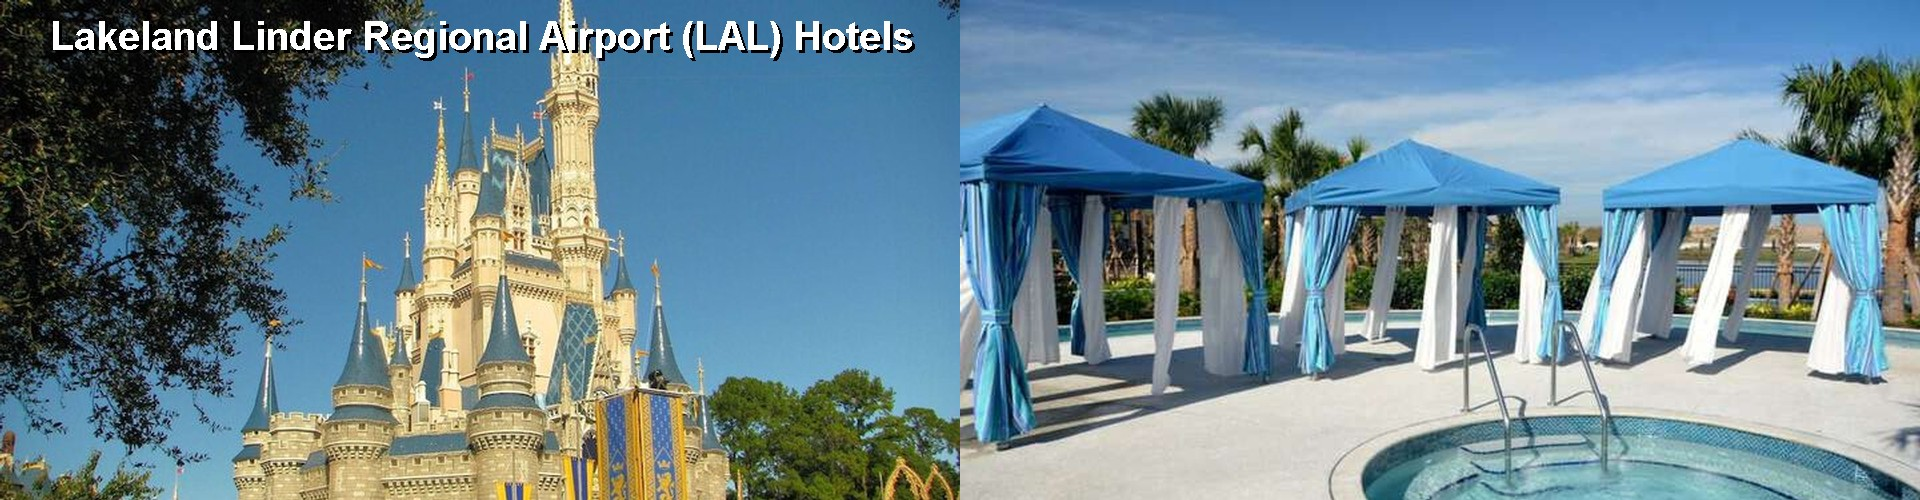 5 Best Hotels near Lakeland Linder Regional Airport (LAL)